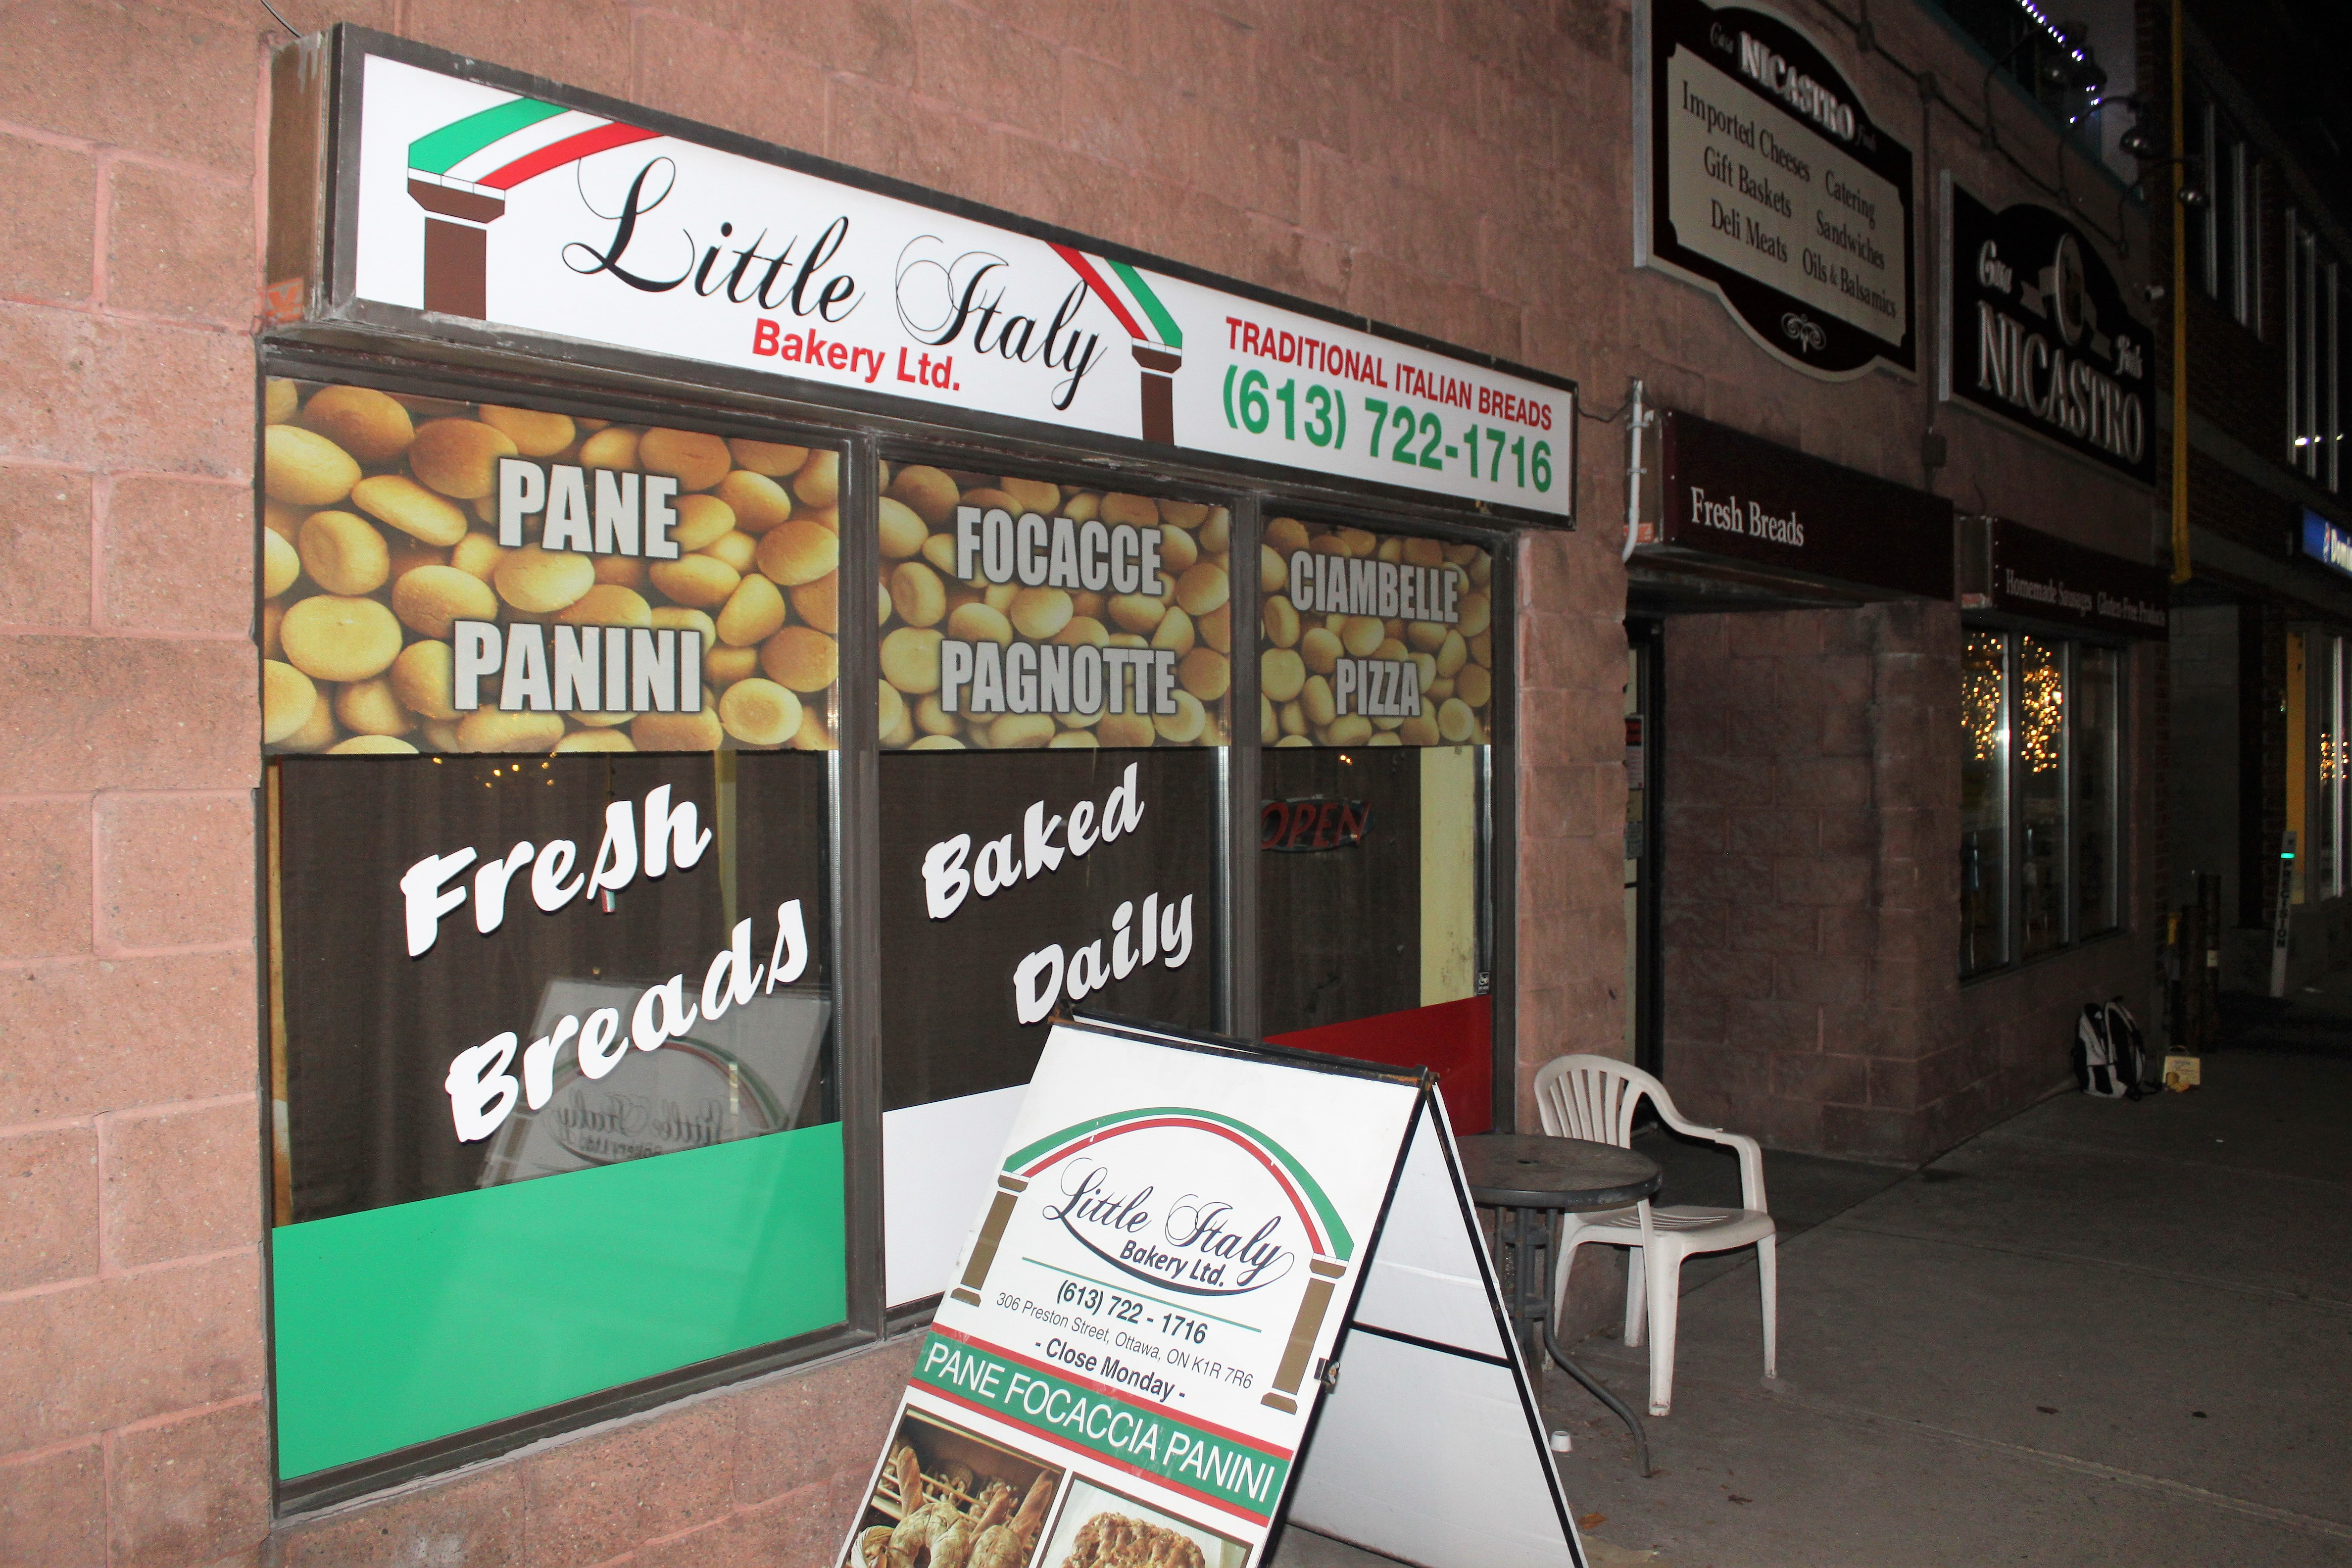 Many have walked through the doors of Little Italy Bakery, including health and food inspectors that often flag the business as being in violation. Source: Peter Rukavina